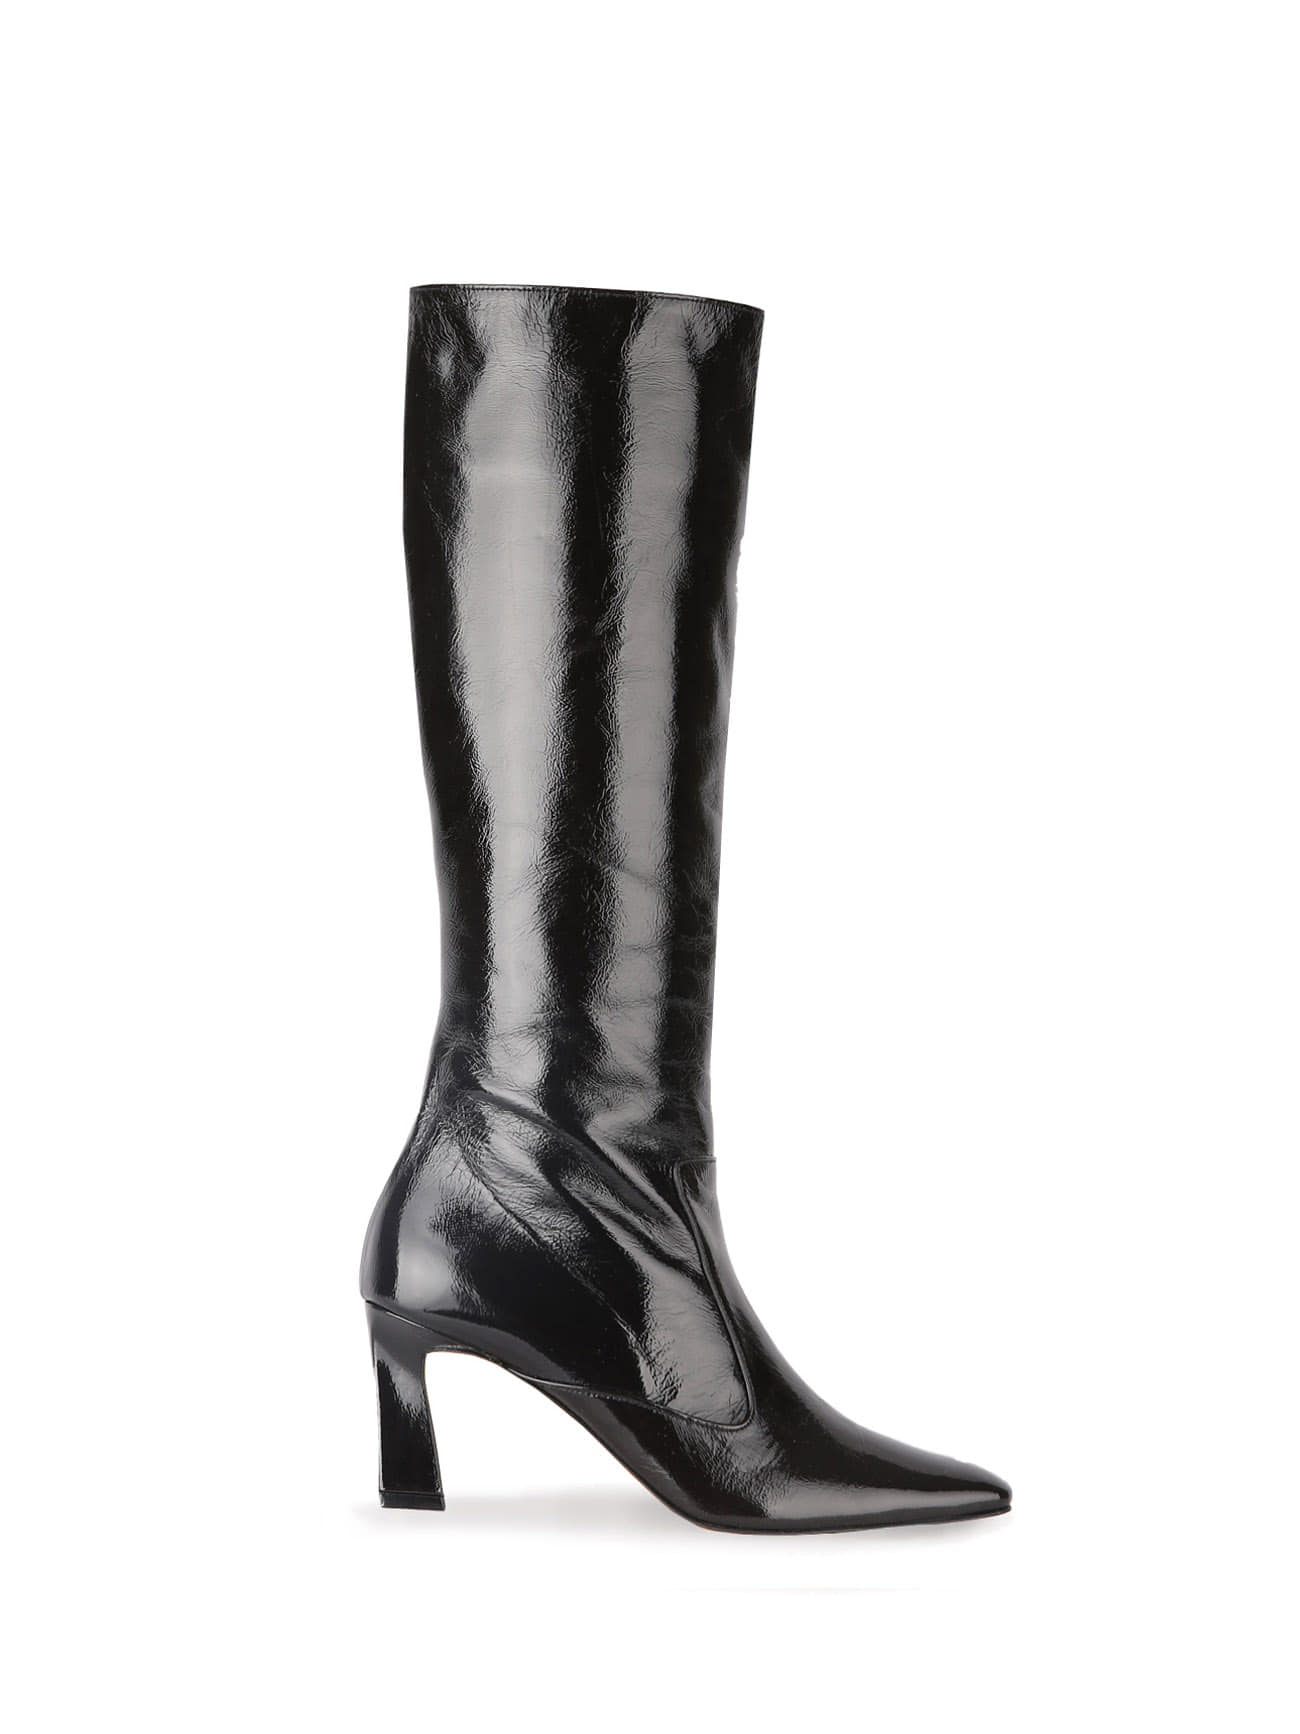 COLLIN SQUARE-TOE LEATHER BOOTS (7cm) - BLACK